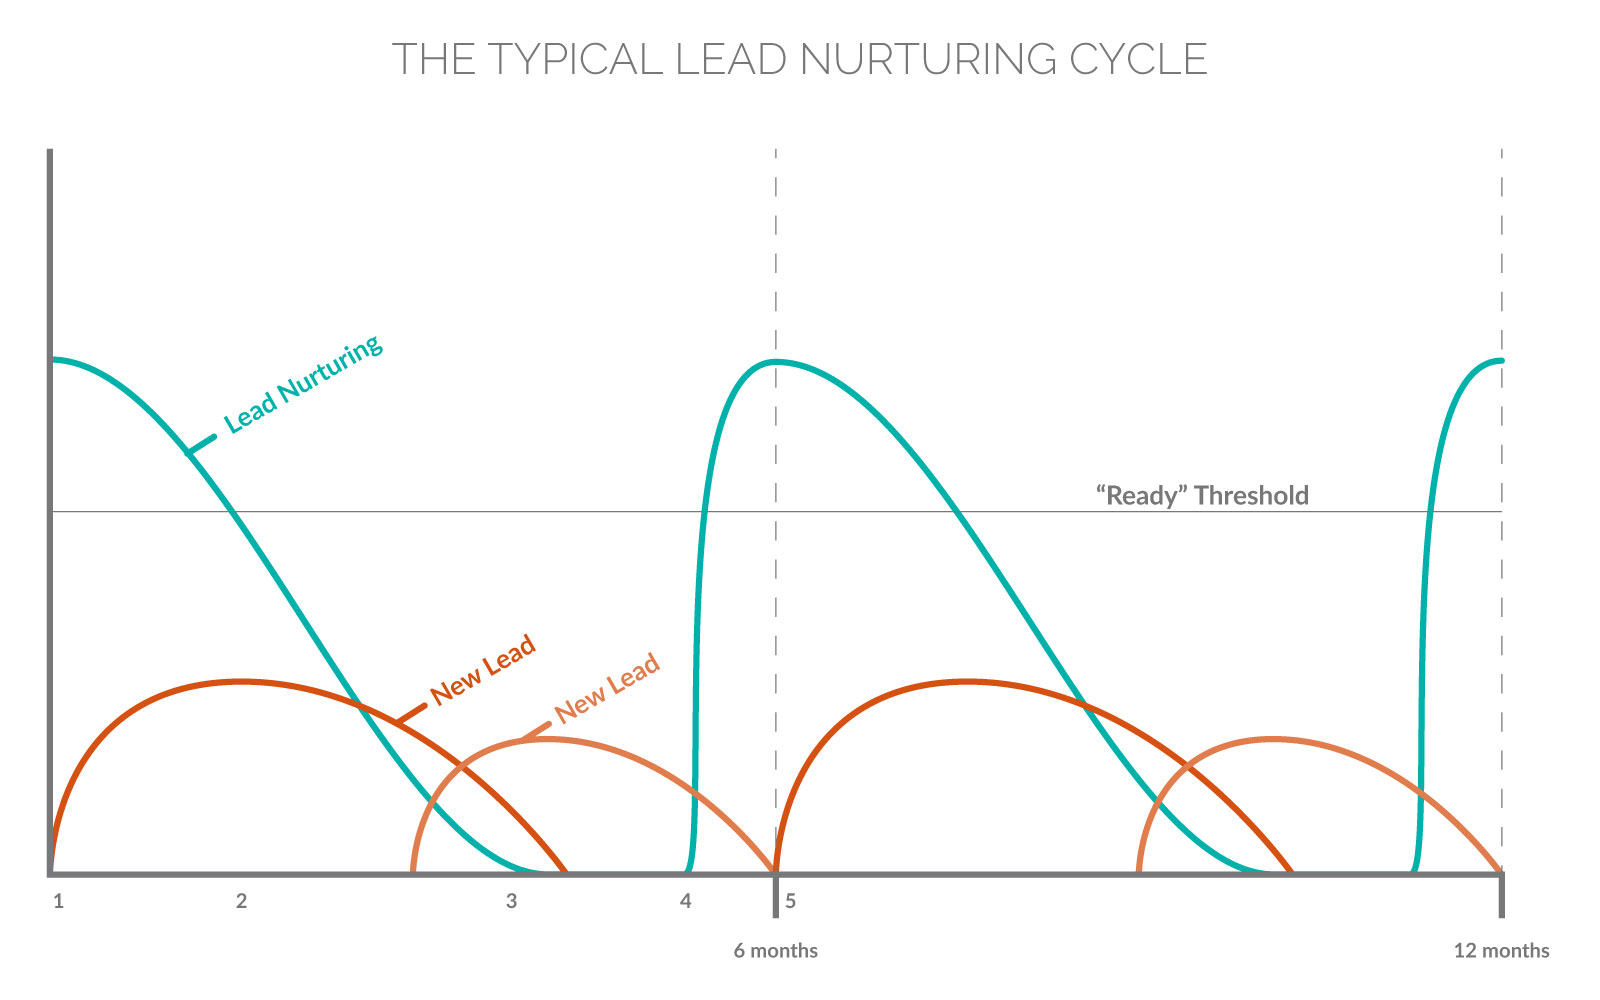 Generate Consistent Mortgage Leads—The Typical Lead Nurturing Cycle